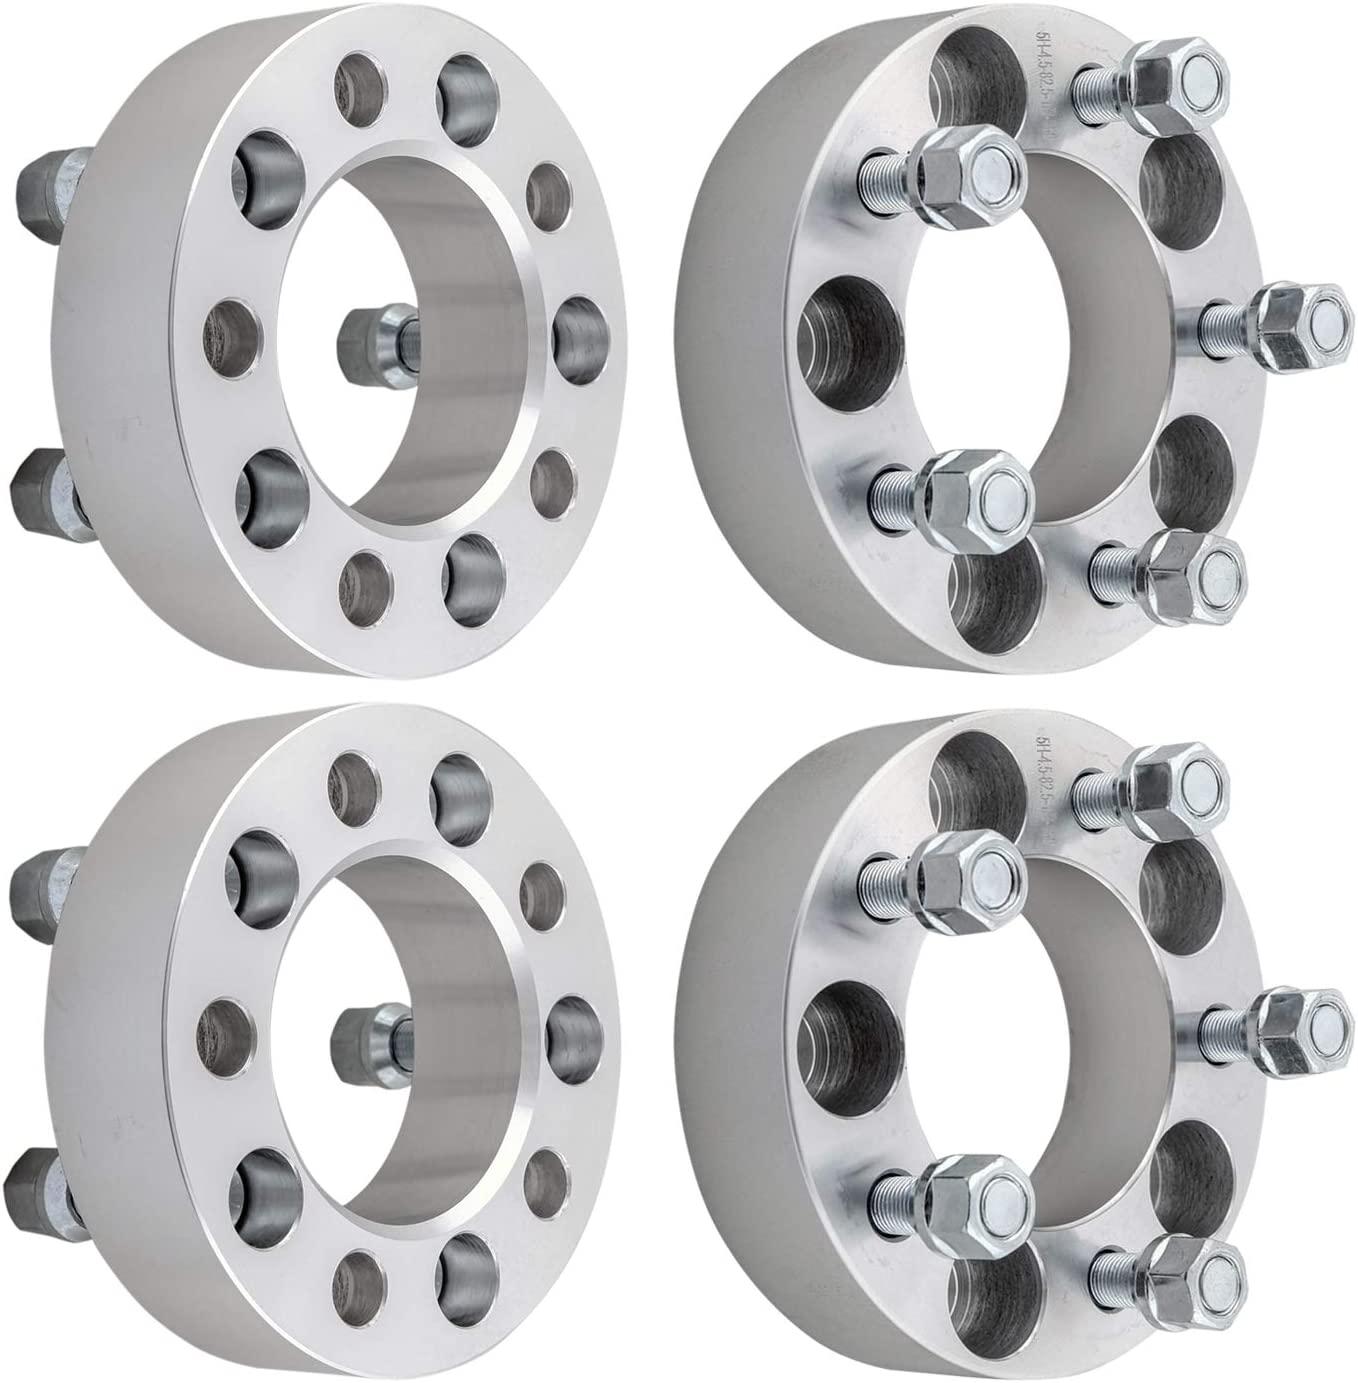 DCVAMOUS 5x4.5 Wheel Spacers Compatible with Jeep Ford 5 Lug 4pc 1.5 Wheel Spacers 1//2 Studs fits for Wrangler Cherokee Liberty Town Car MKS MKX Mustang Taurus Explorer Ranger Edge